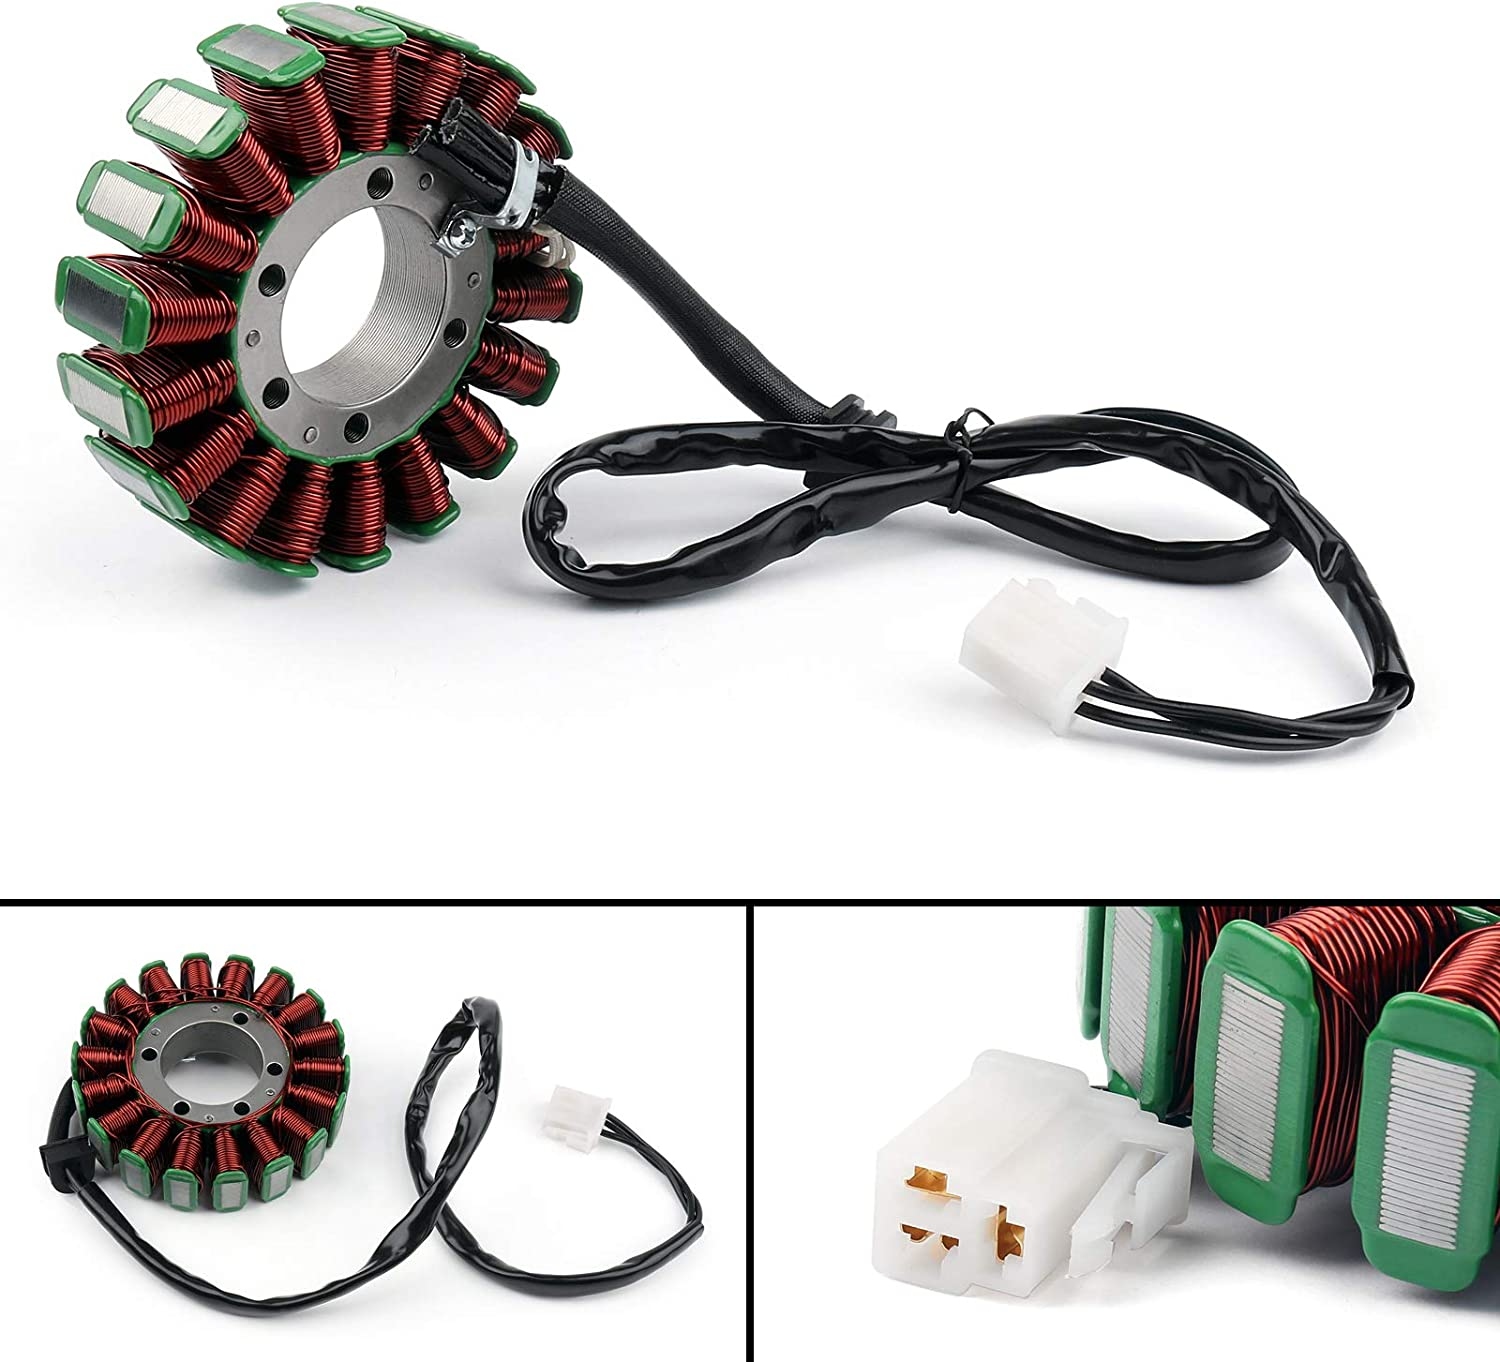 Artudatech Motorcycle Magneto Stator Coil Moto Magneto Generator Engine Stator Coil Ignition Generator for Trium-ph Day-tona 955i 2002-2006